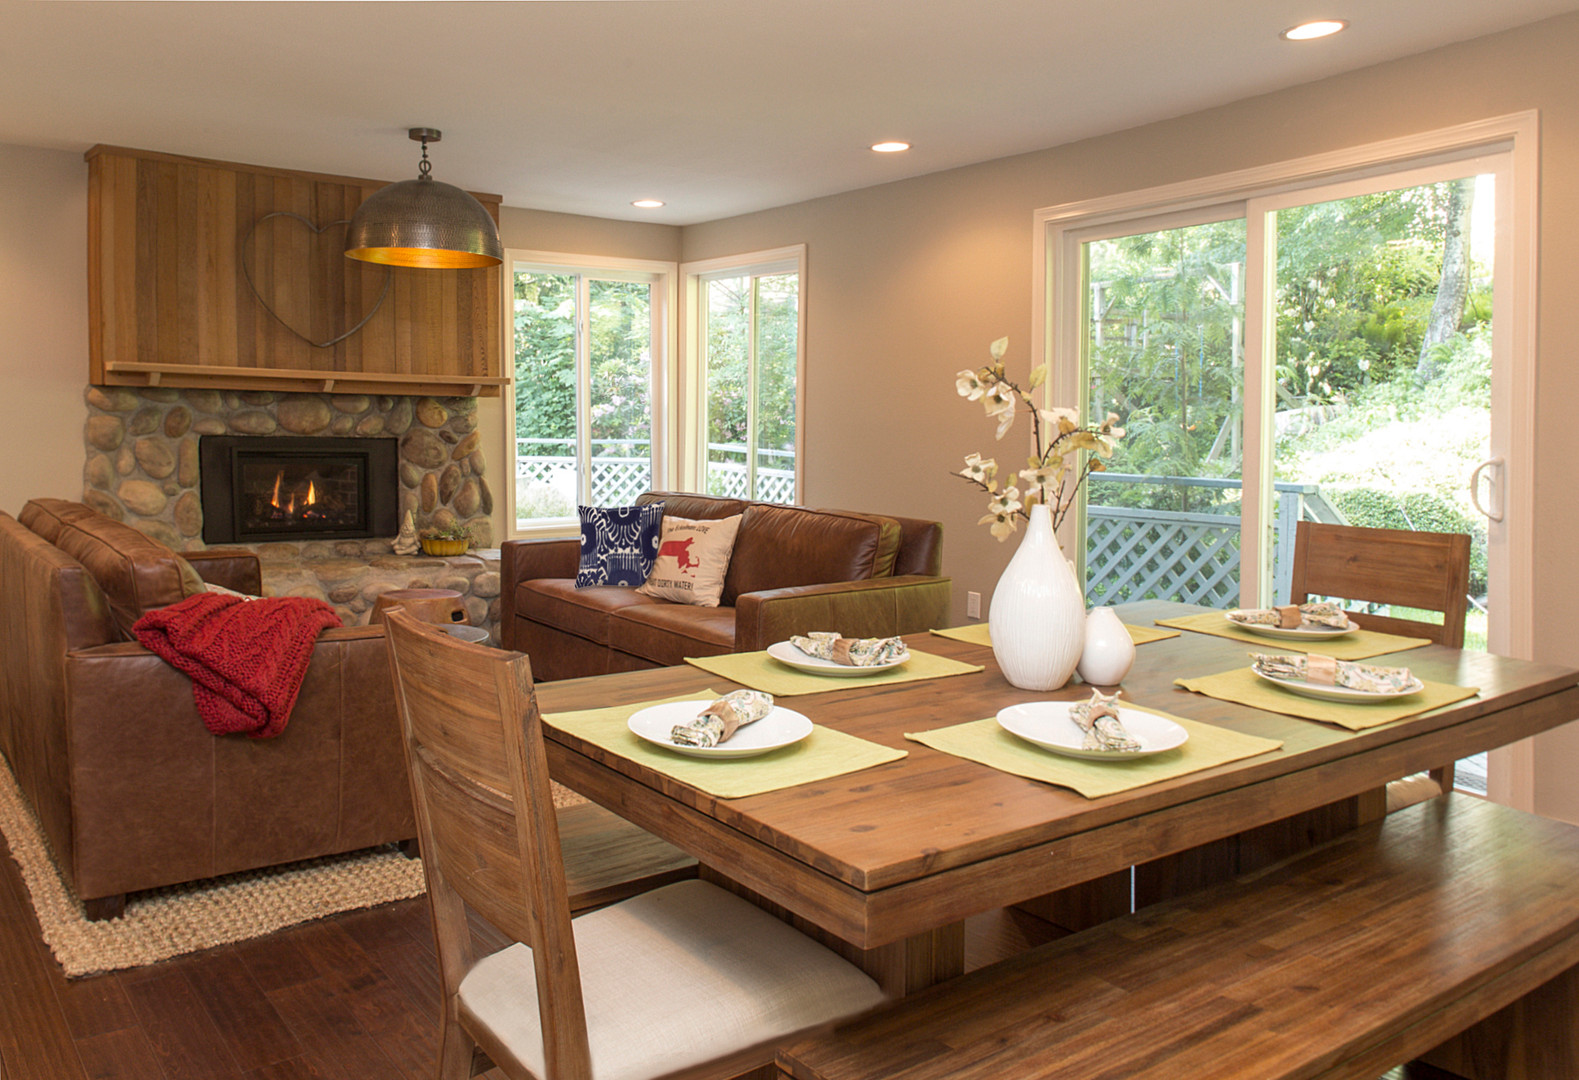 The adjoining family room with eat in kitchen means everyone can be comfortable.